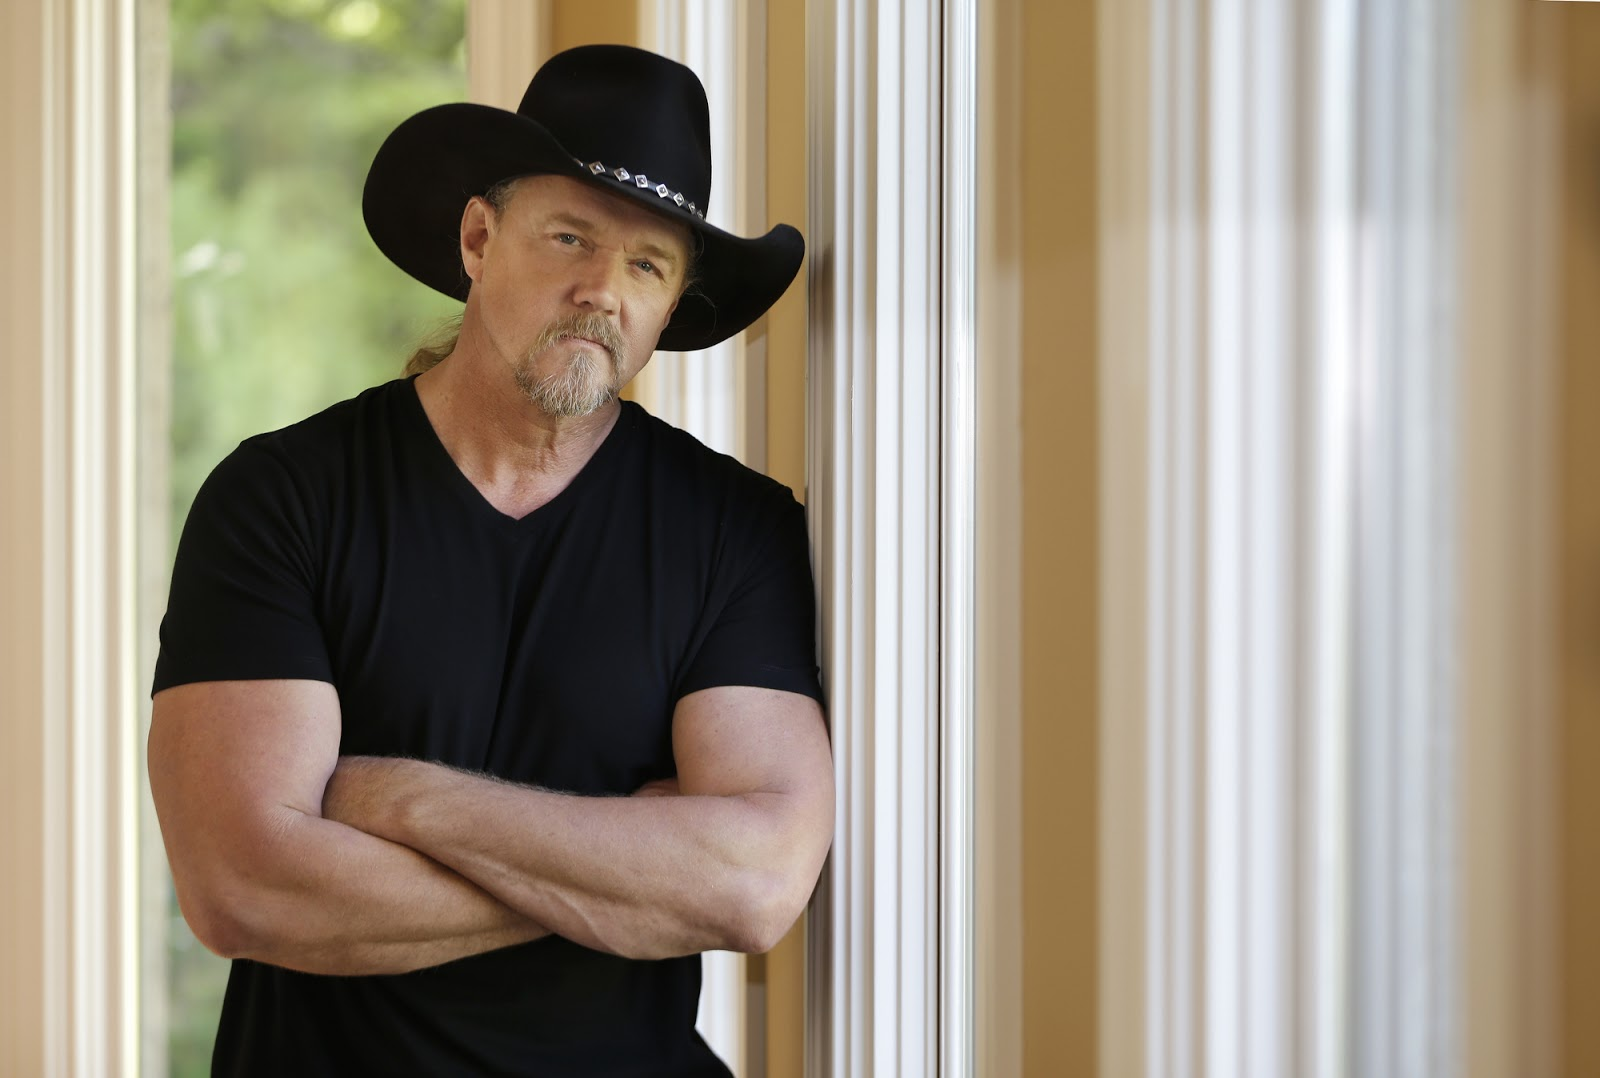 Trace Adkins's quote